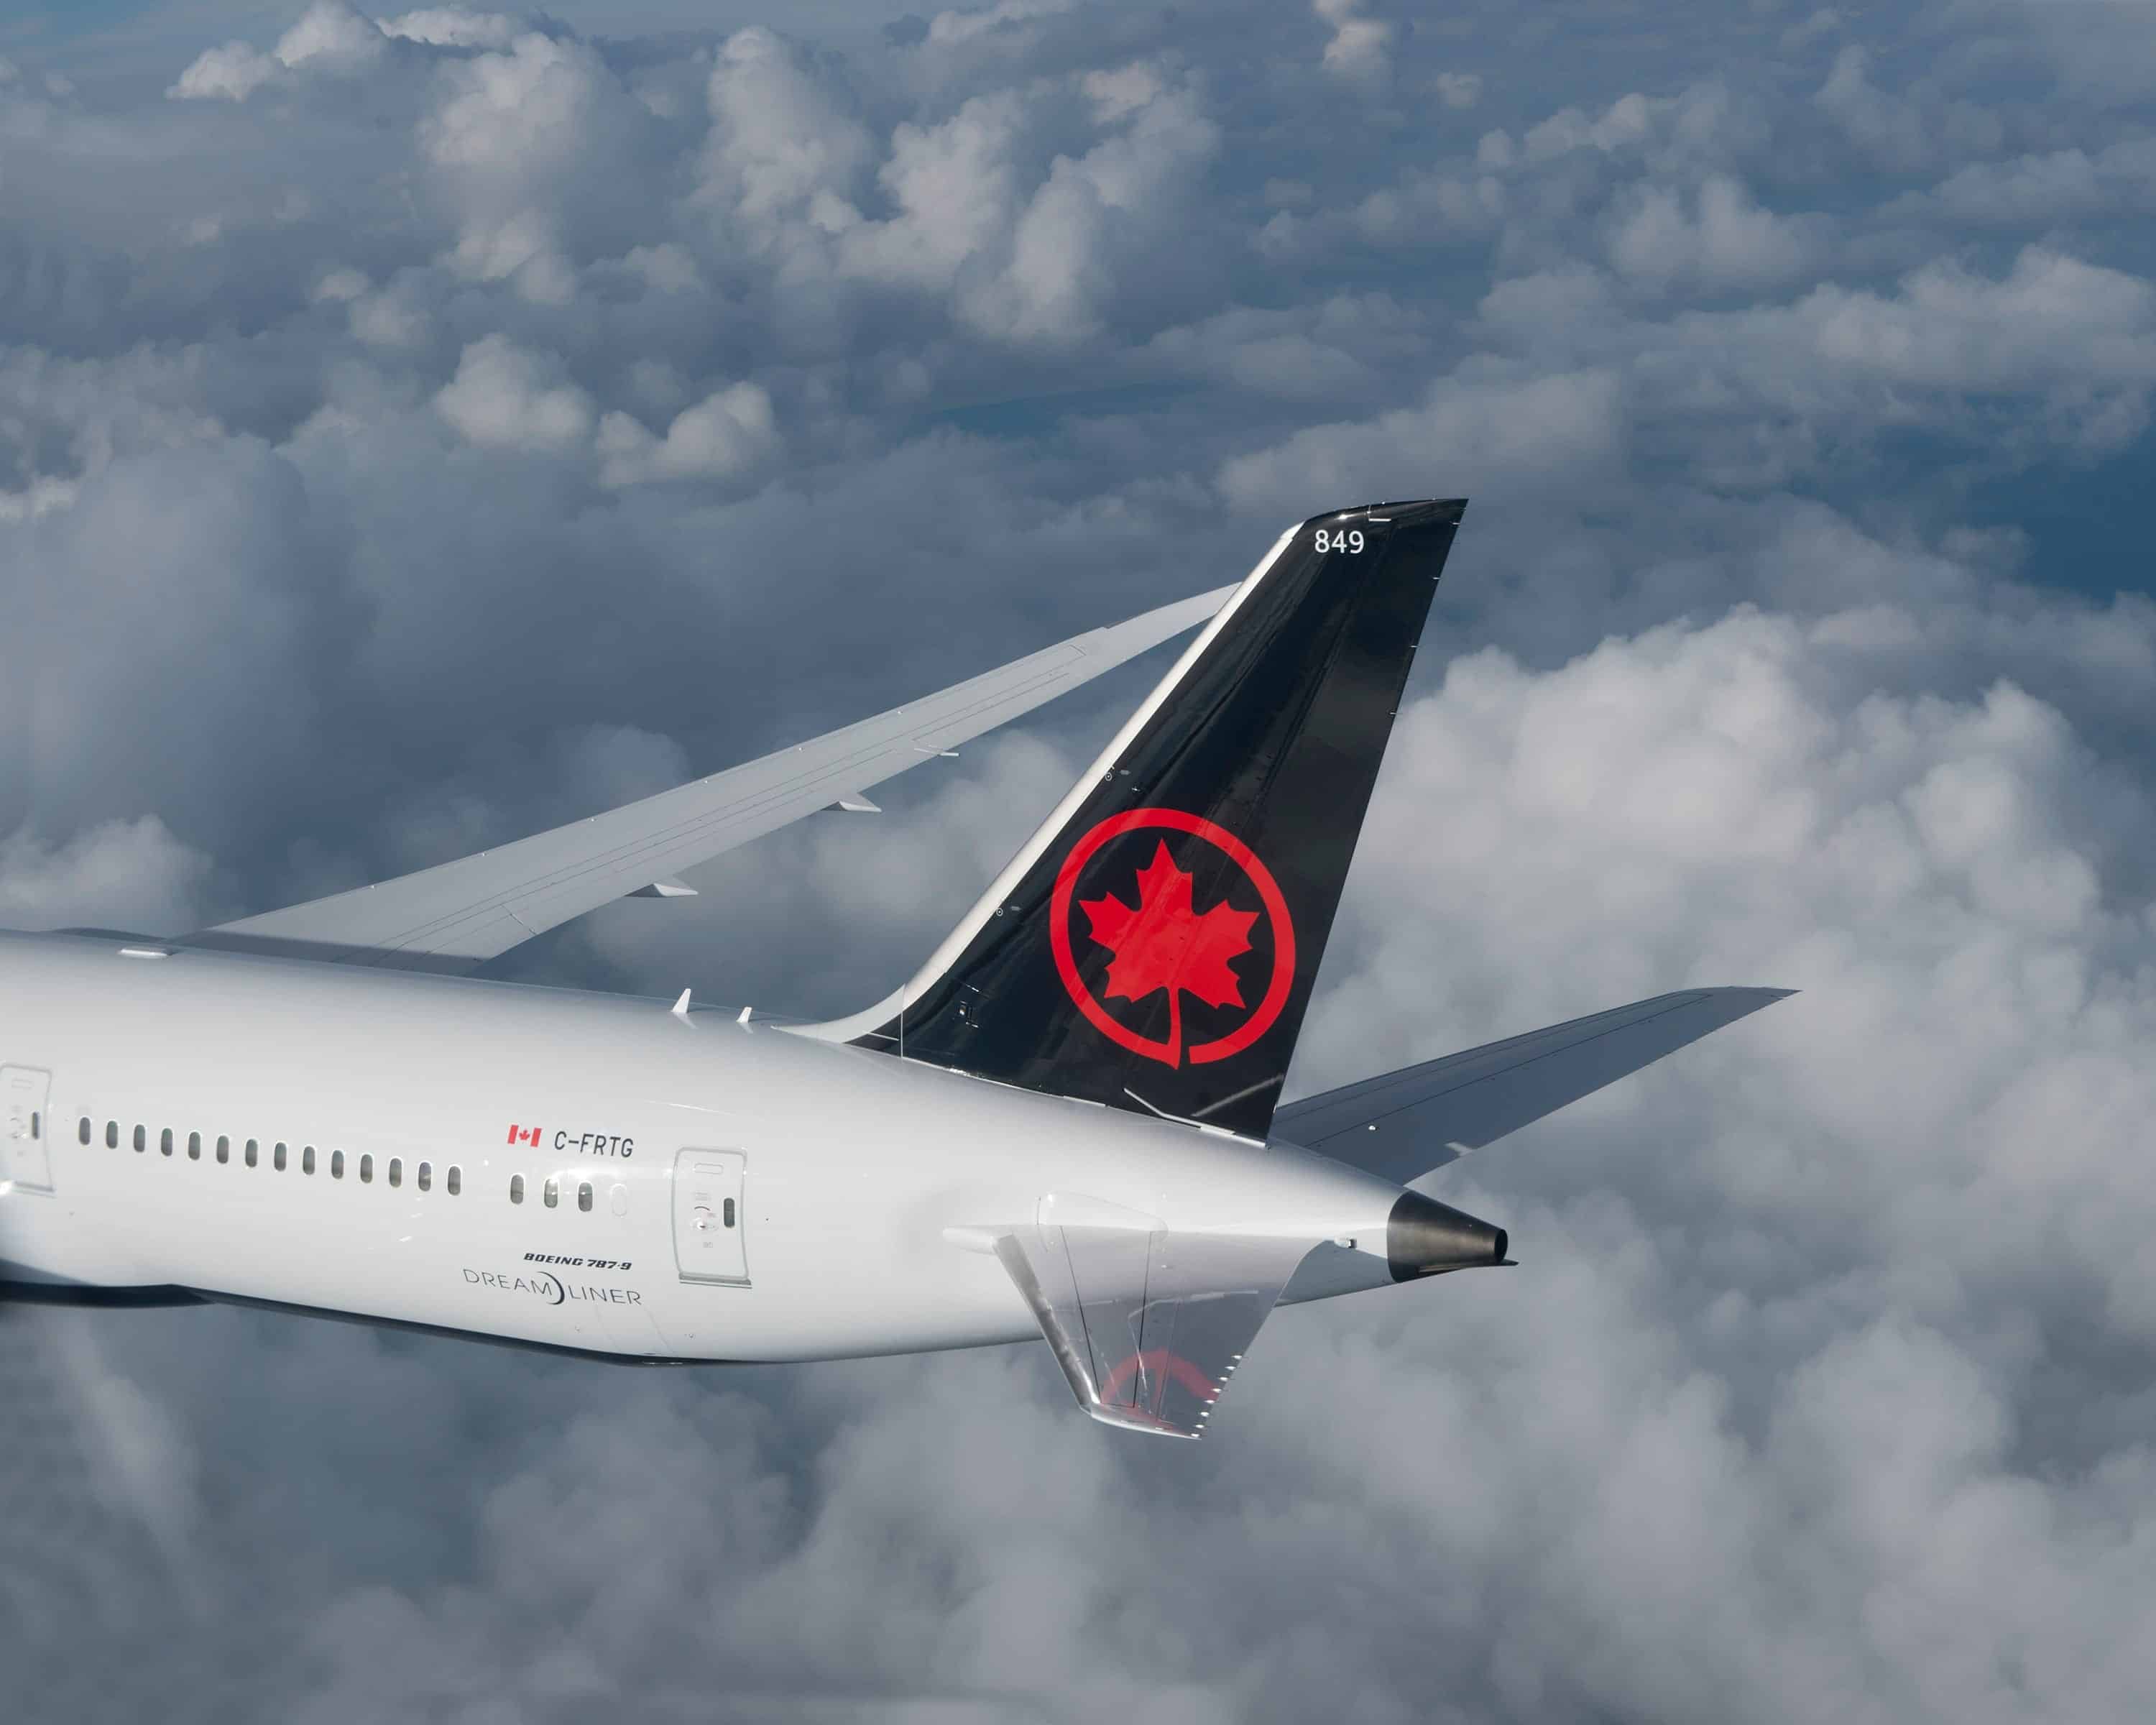 Air Canada has announced a cross-border summer schedule starting August 9 with up to 220 daily flights between the US and Canada.